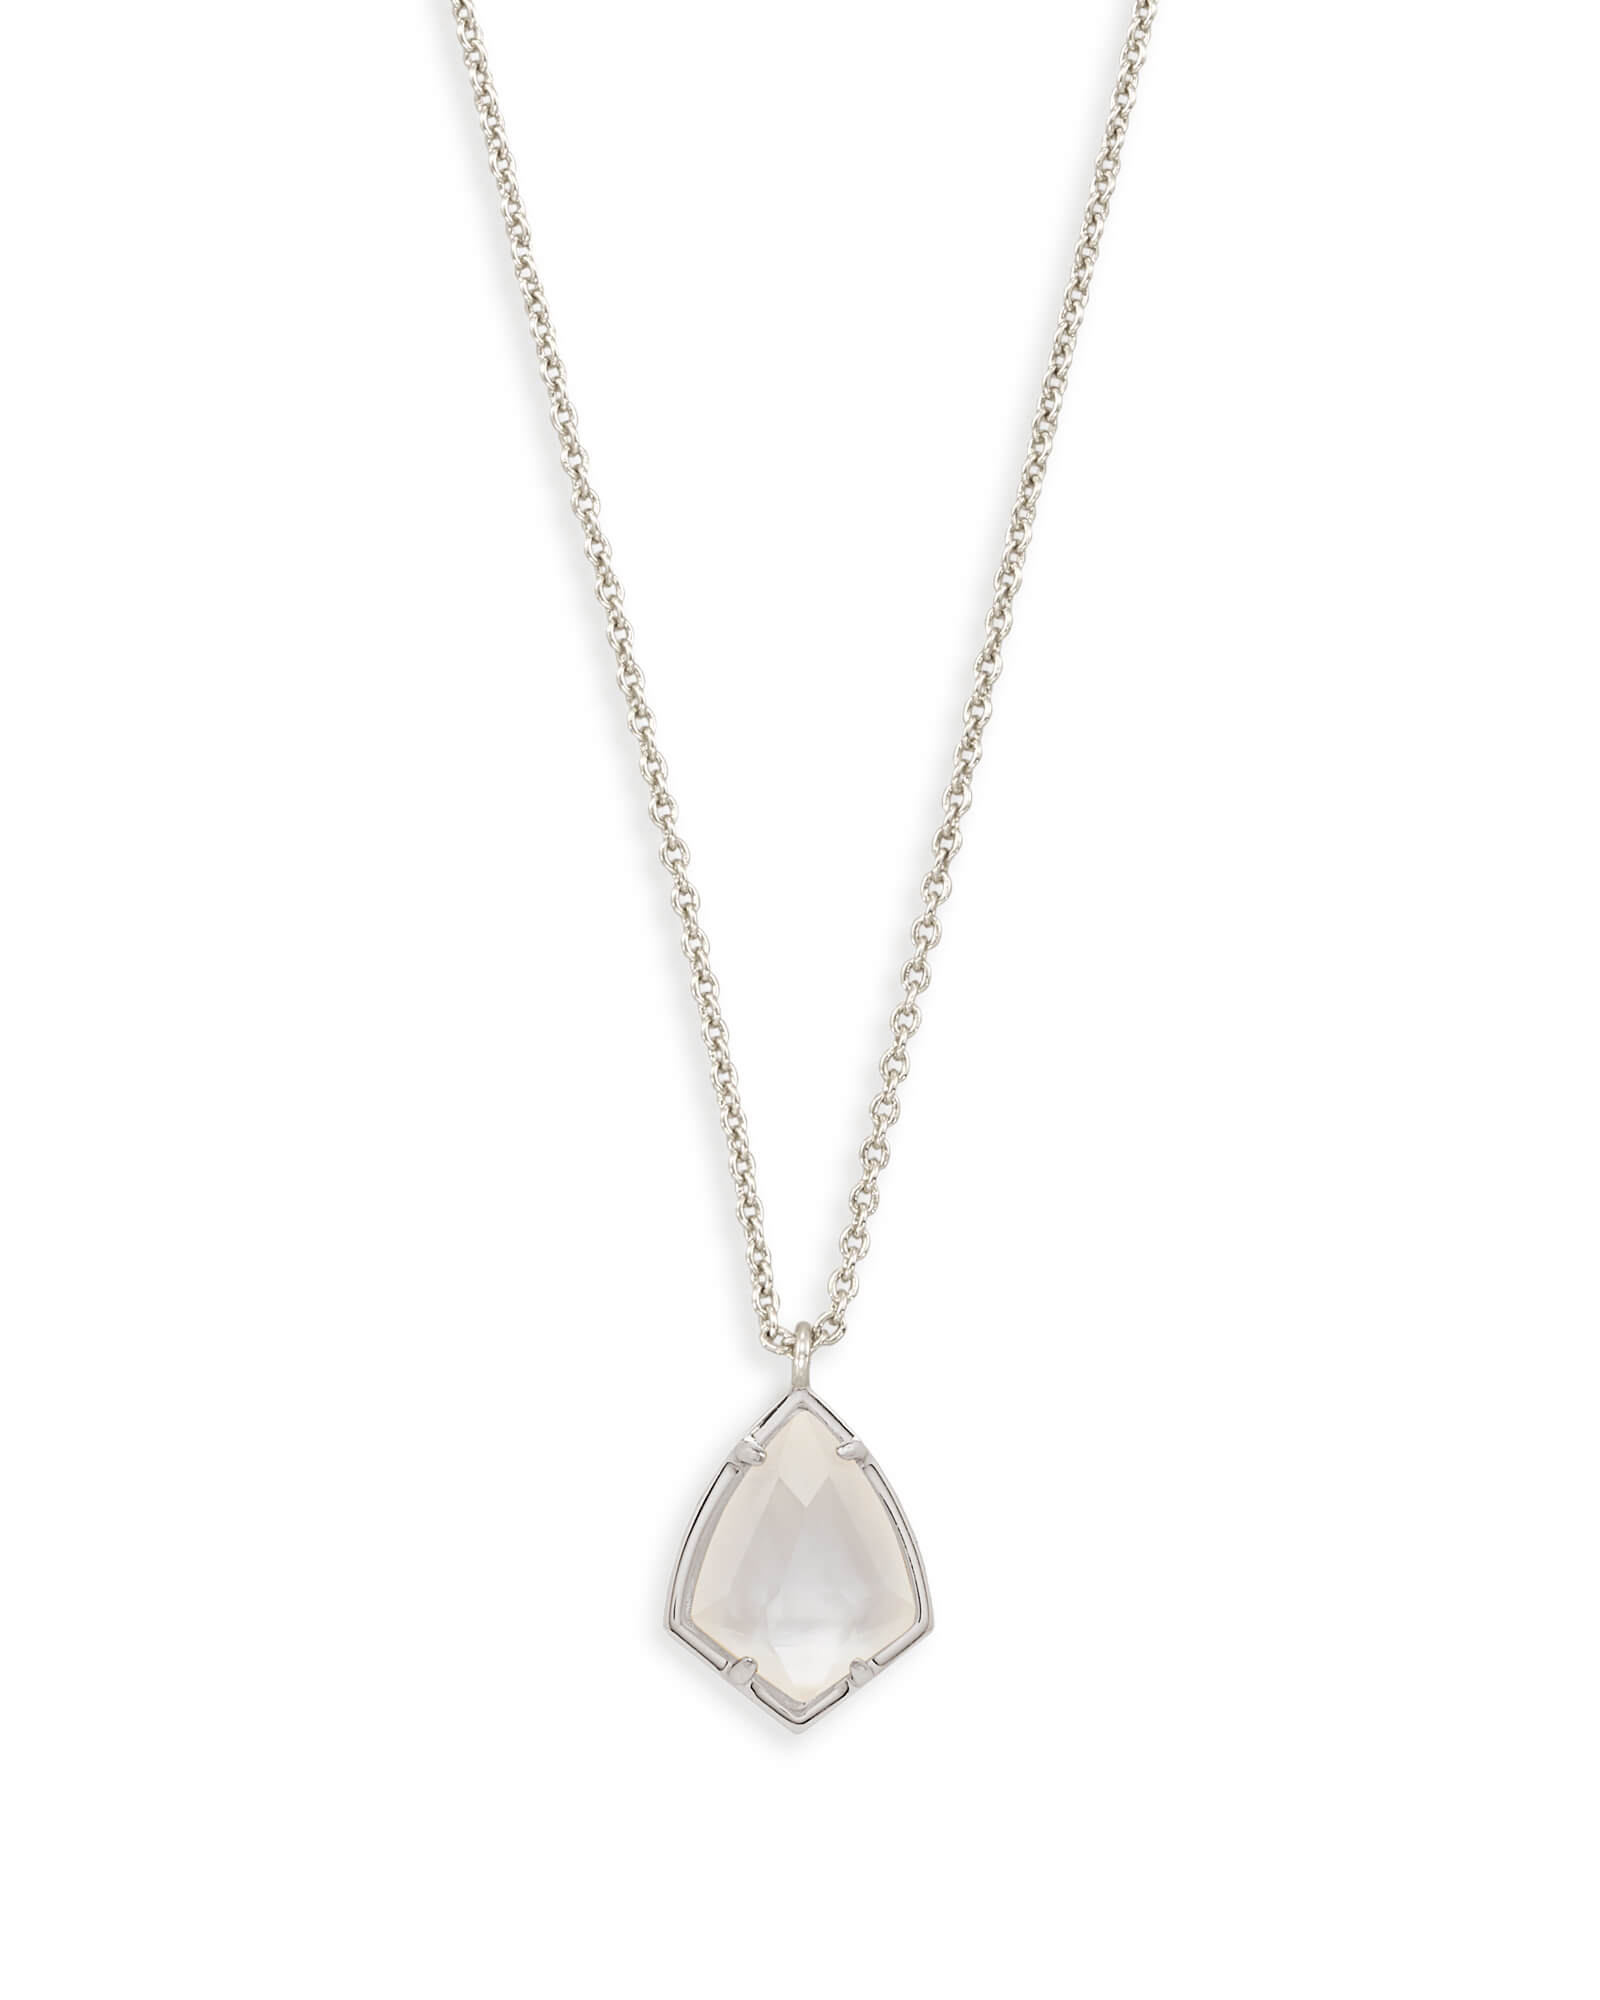 Cory Silver Pendant Necklace in Ivory Pearl